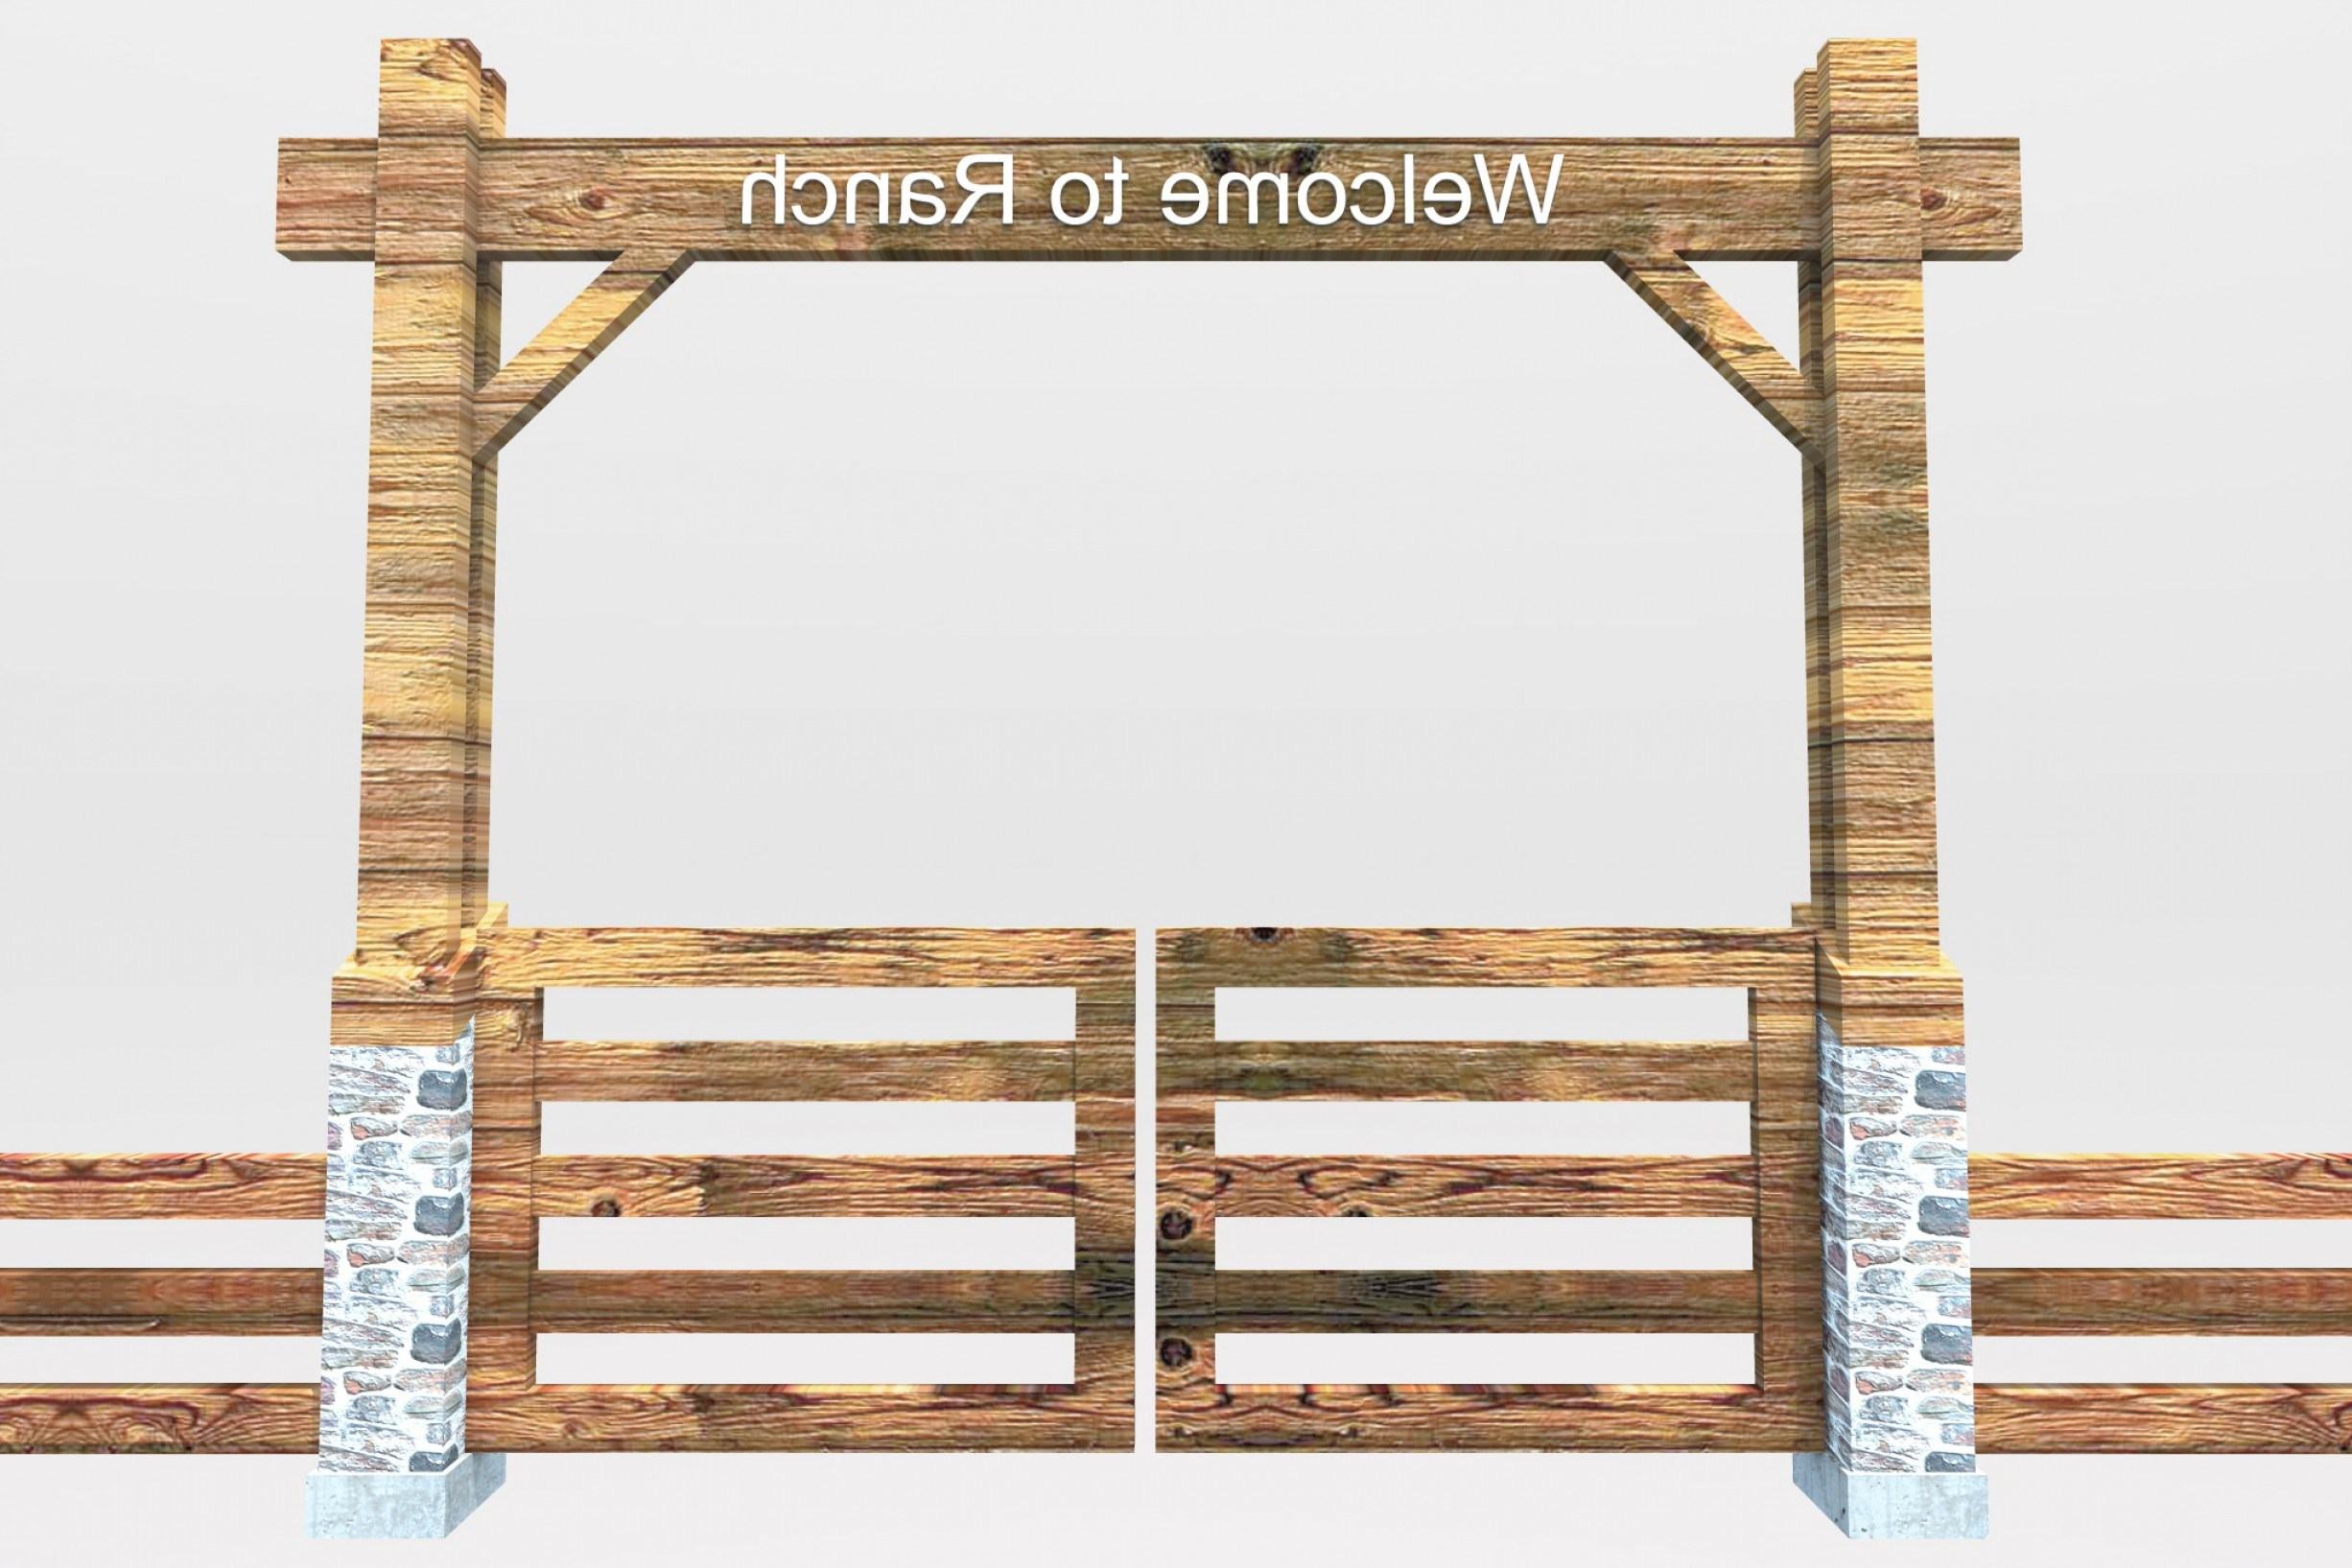 Ranch gate clipart 5 » Clipart Portal.